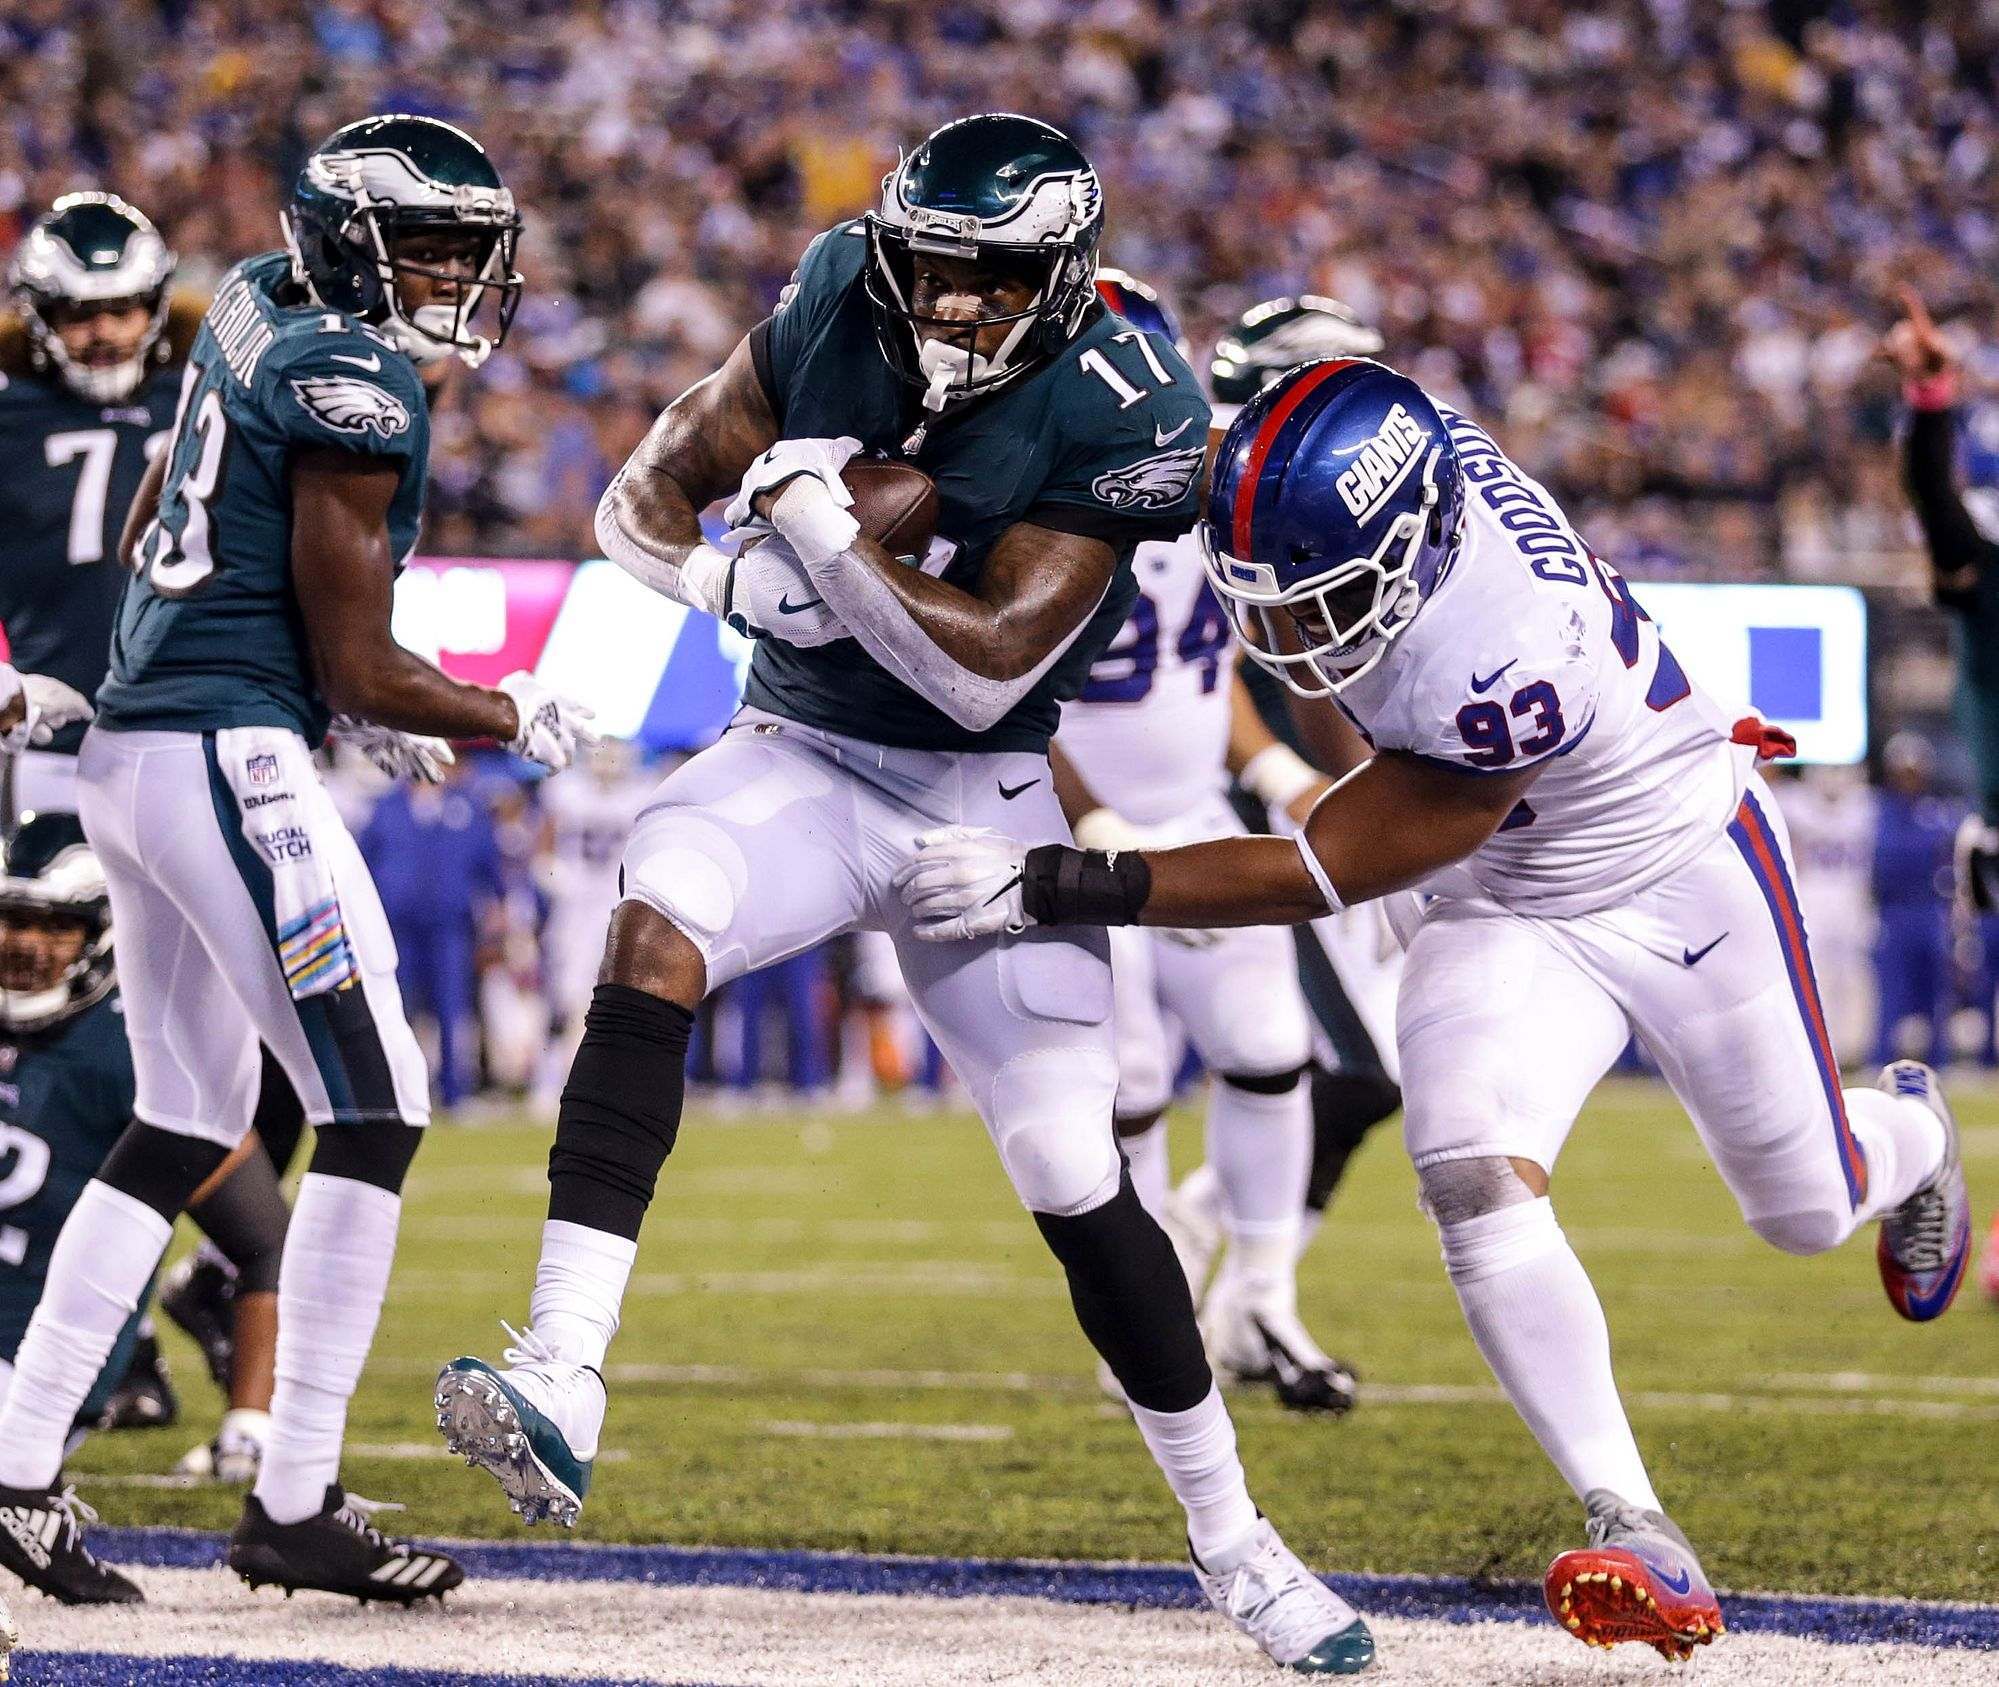 .@TheWorldof_AJ came up big again for the #Eagles in Thursday night's win.  ��: https://t.co/kVxUtj0kiL #FlyEaglesFly https://t.co/ZmE1YoePXG